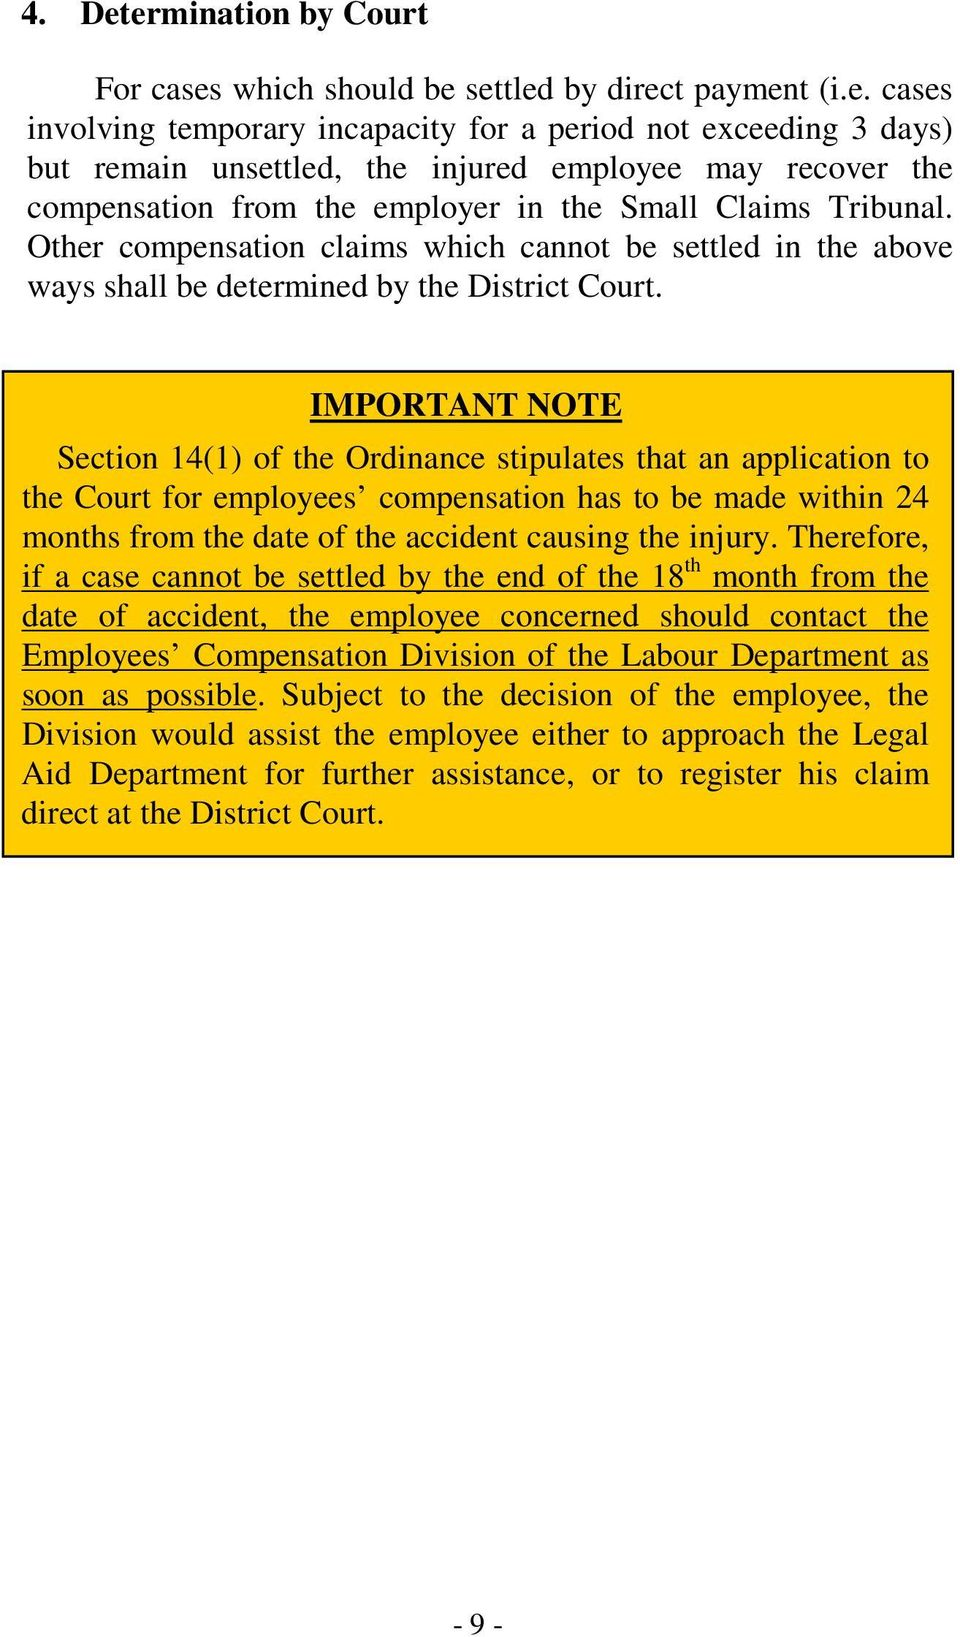 IMPORTANT NOTE Section 14(1) of the Ordinance stipulates that an application to the Court for employees compensation has to be made within 24 months from the date of the accident causing the injury.